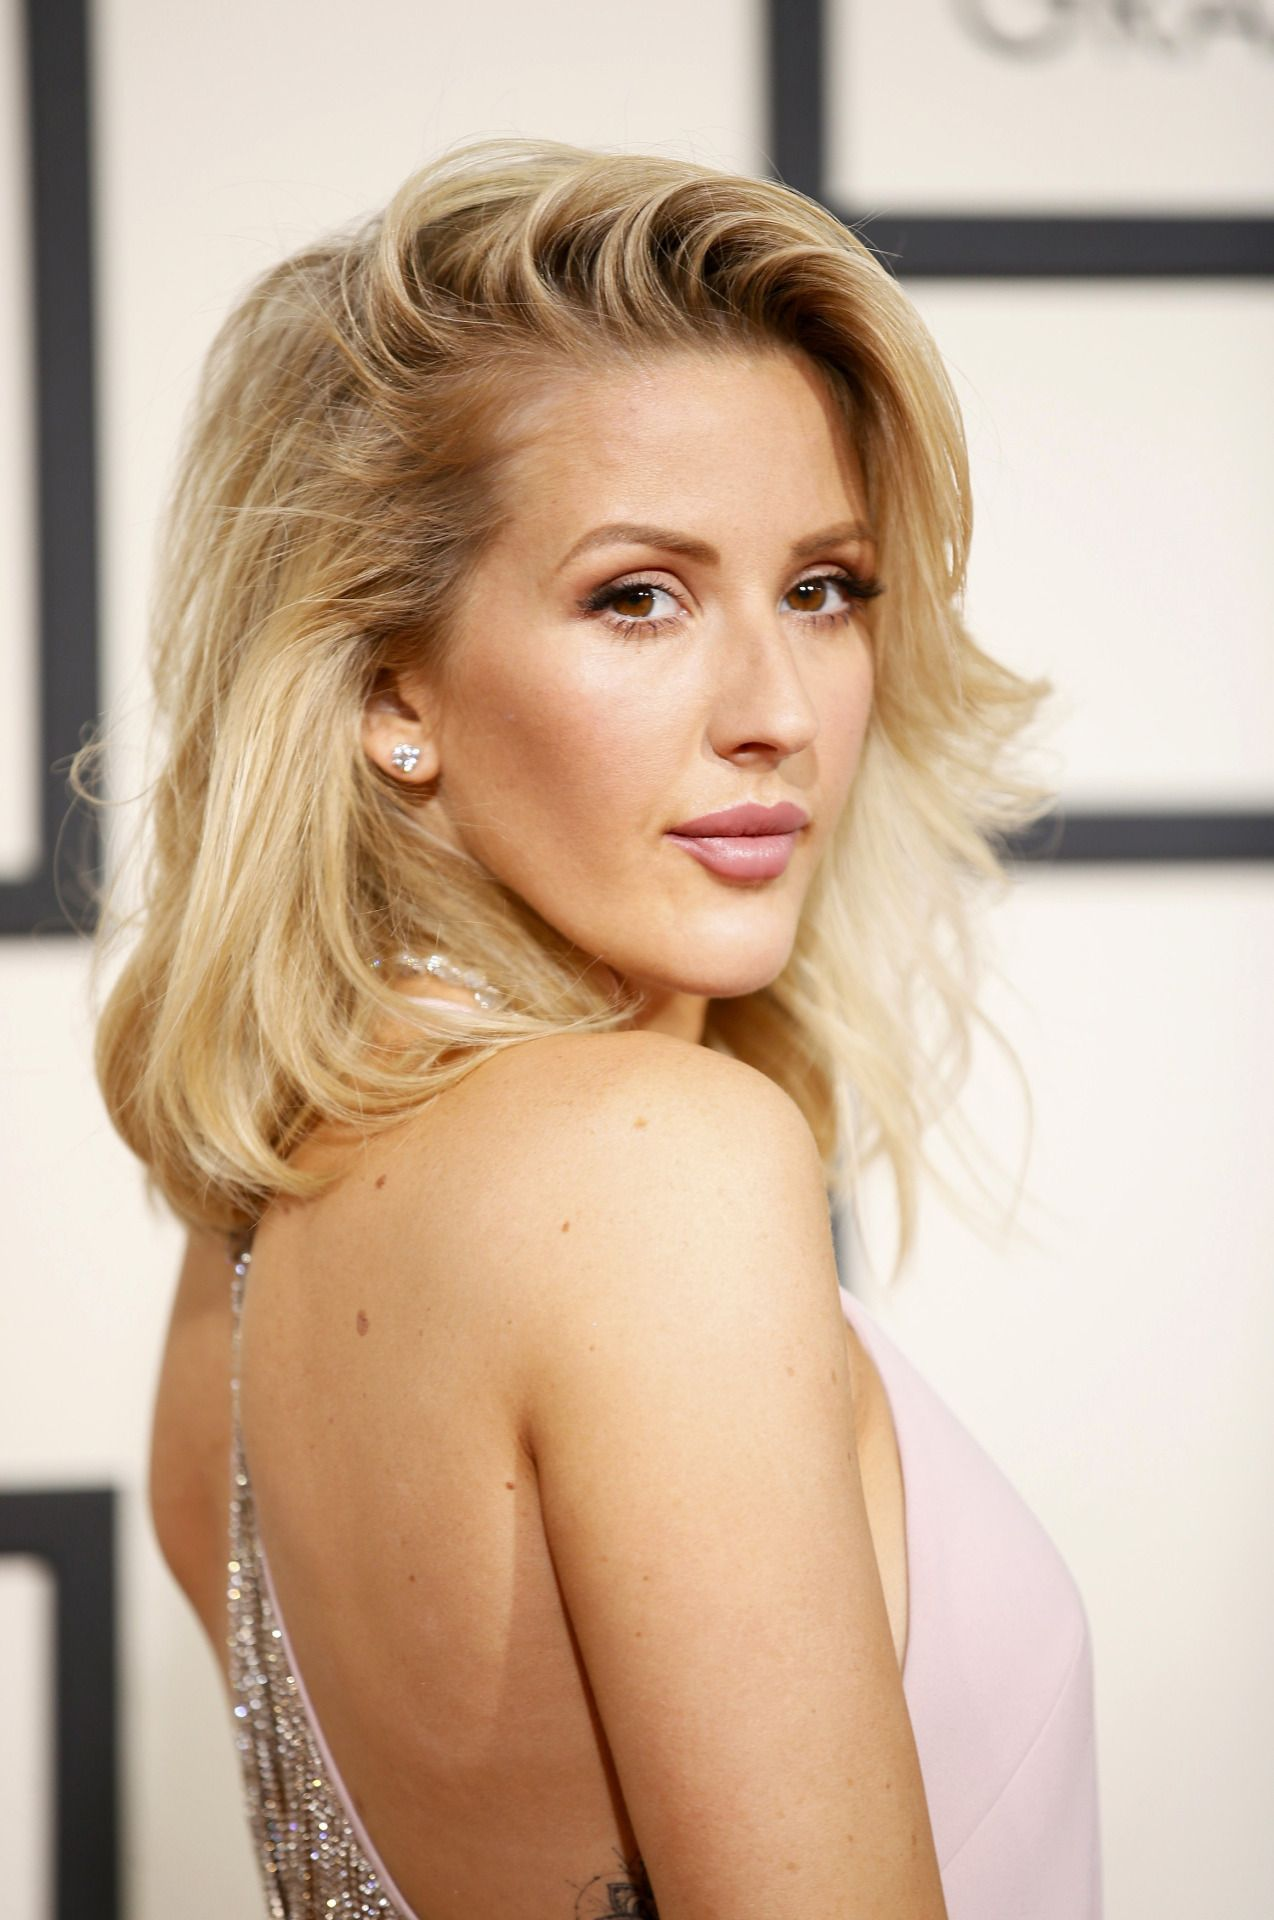 Ellie Goulding Attends The 58th Grammy Awards At Staples